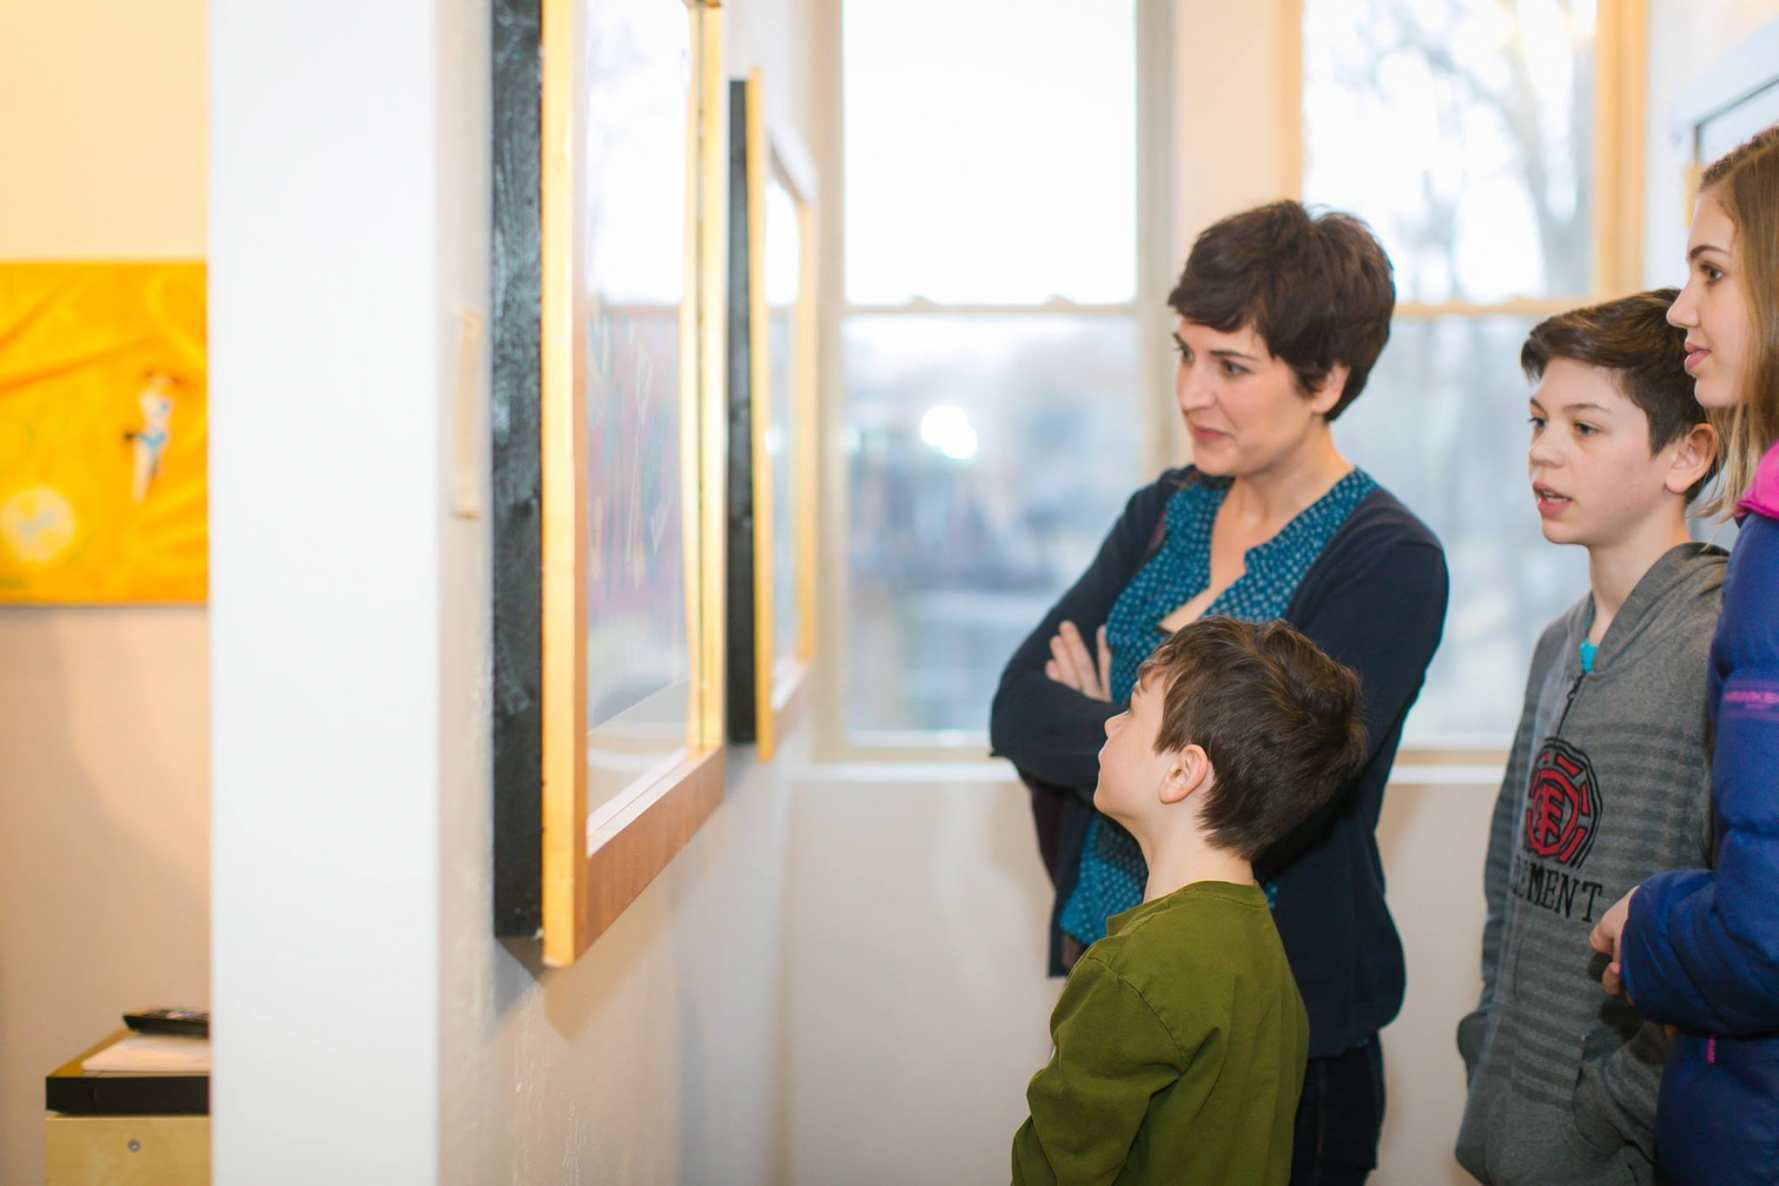 Appleton family at Pierre H. Matisse art exhibit. Image by Capture Life Moments.